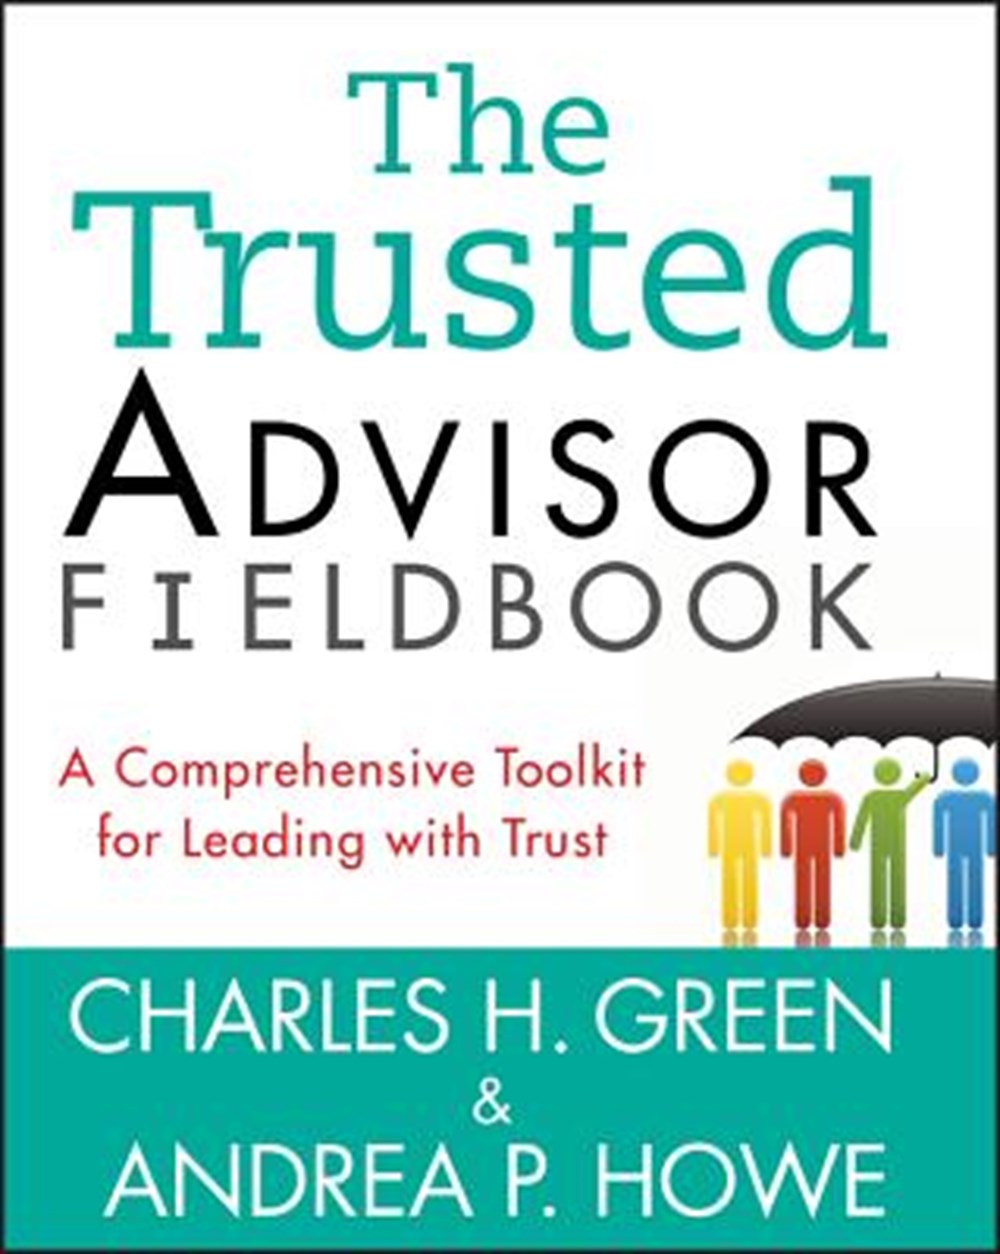 Trusted Advisor Fieldbook A Comprehensive Toolkit for Leading with Trust